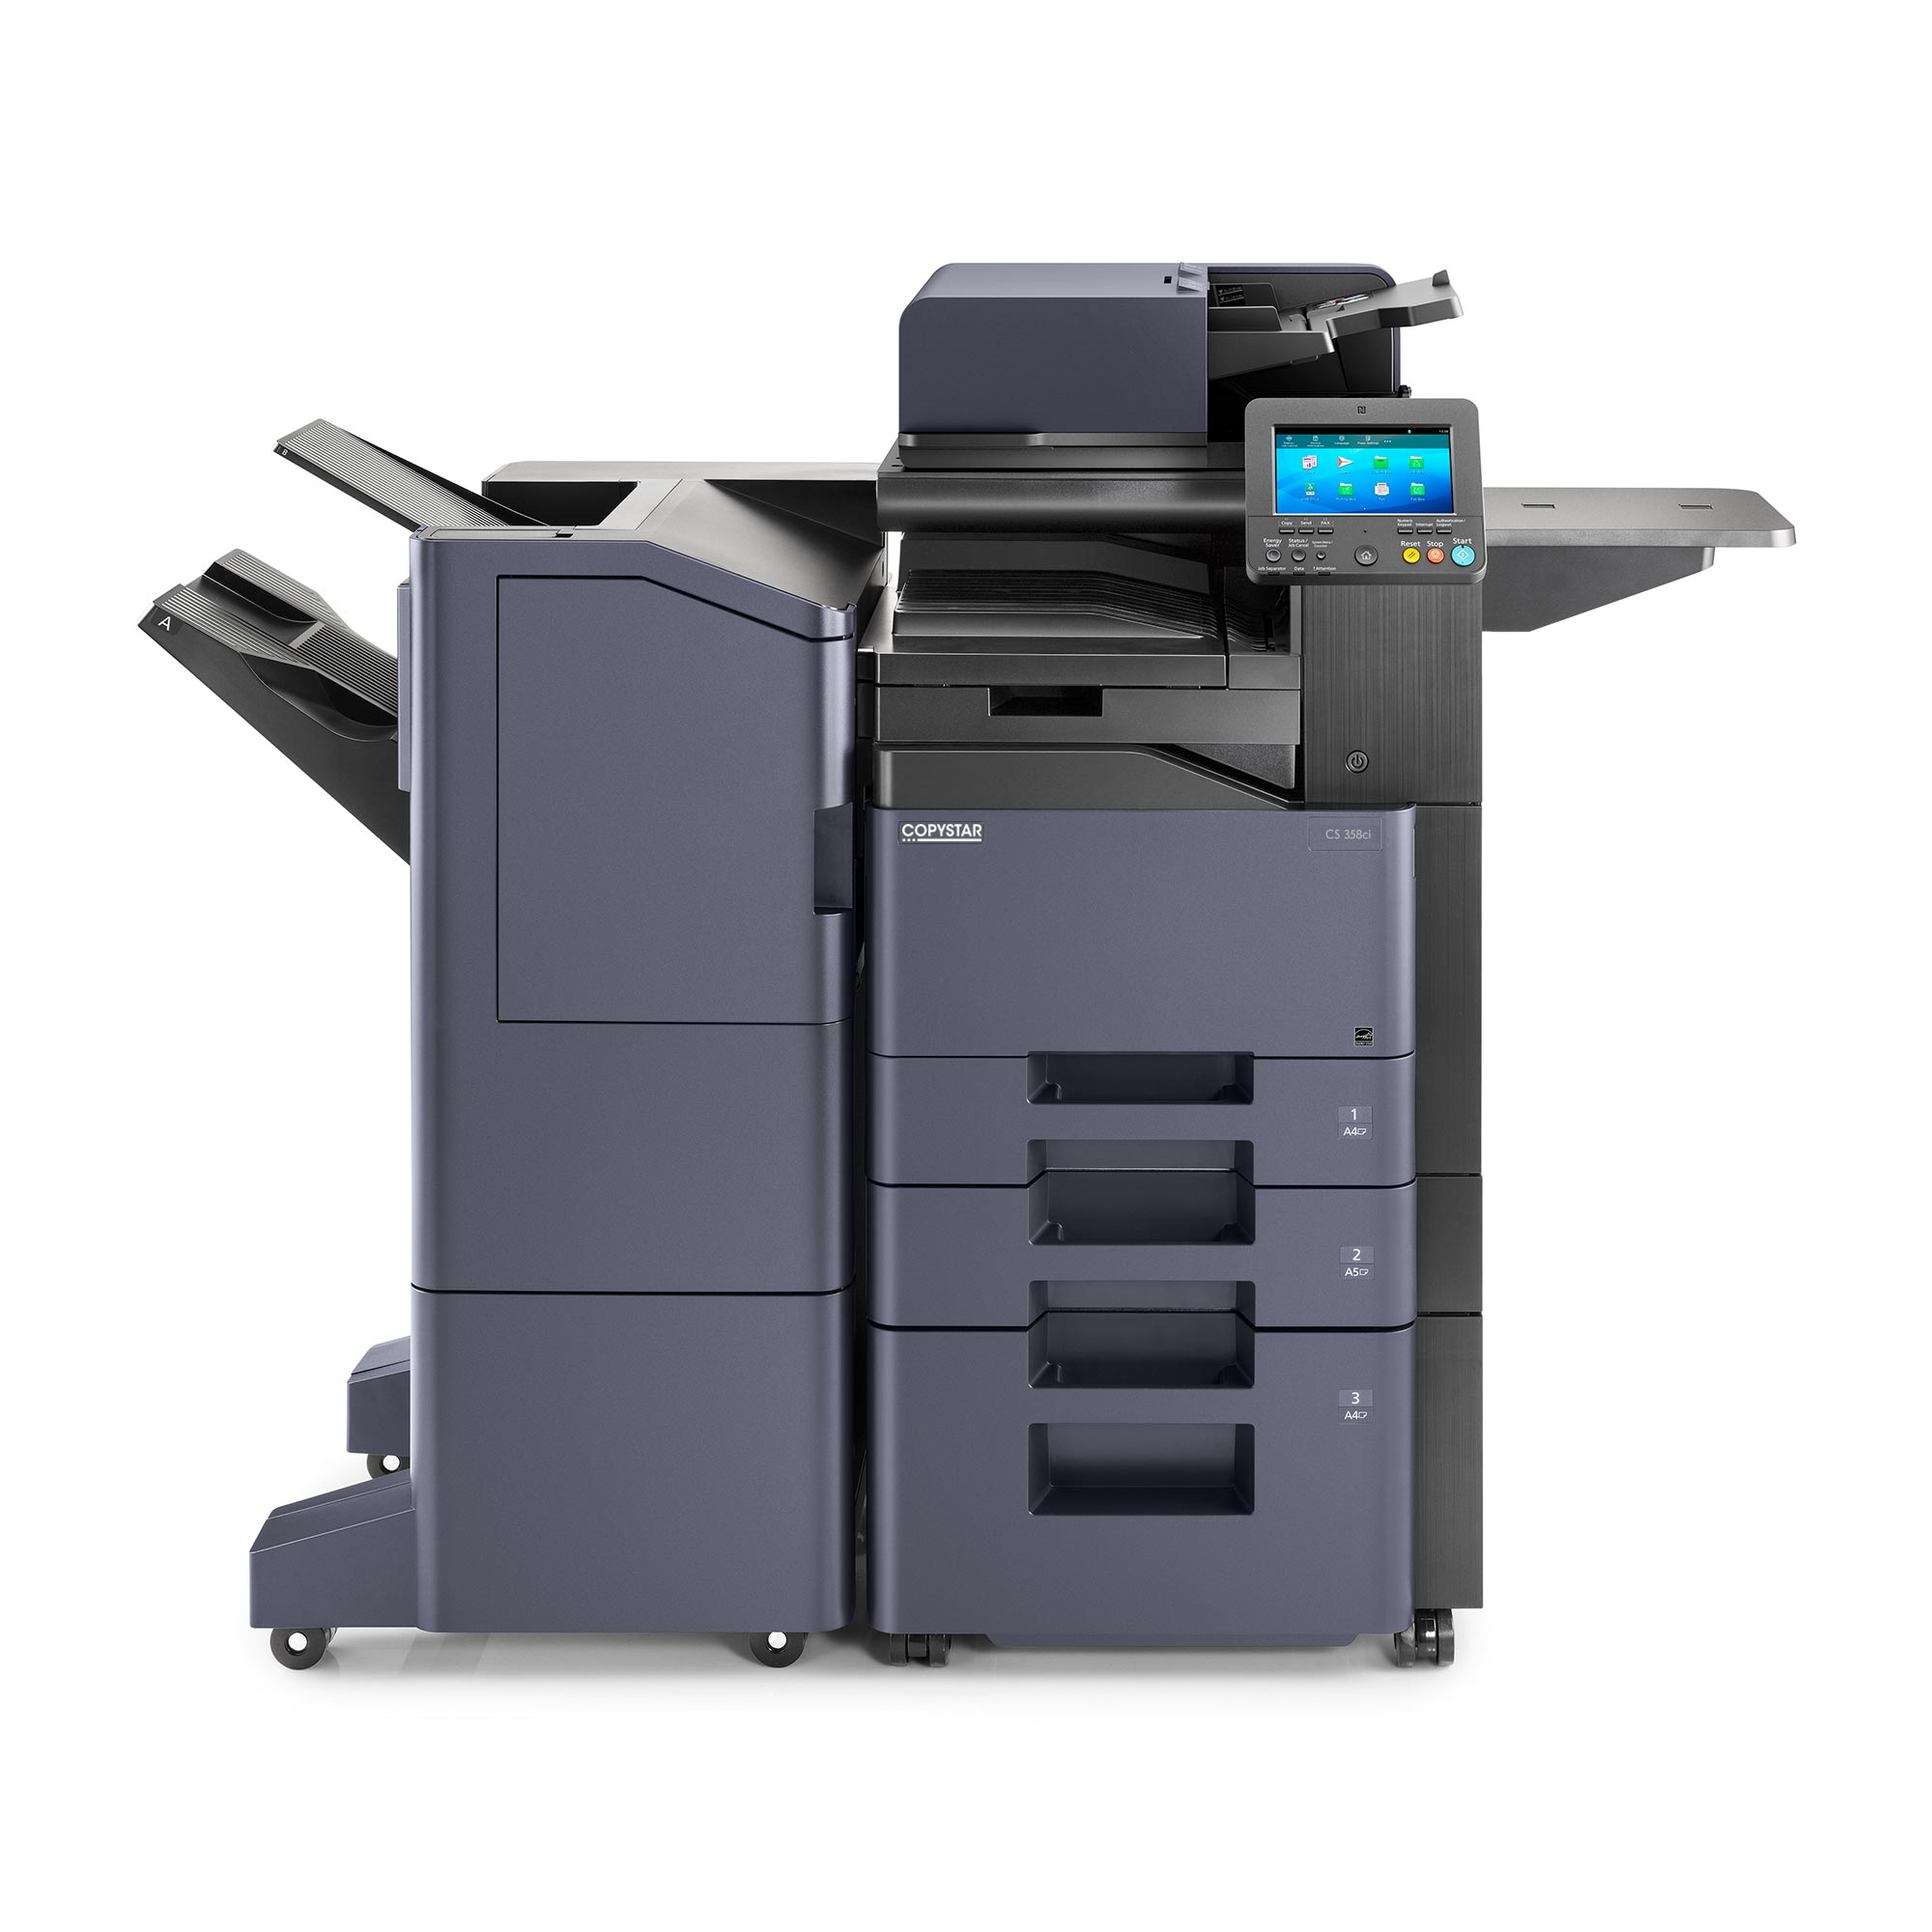 Kyocera CS_358ci - Color Copier